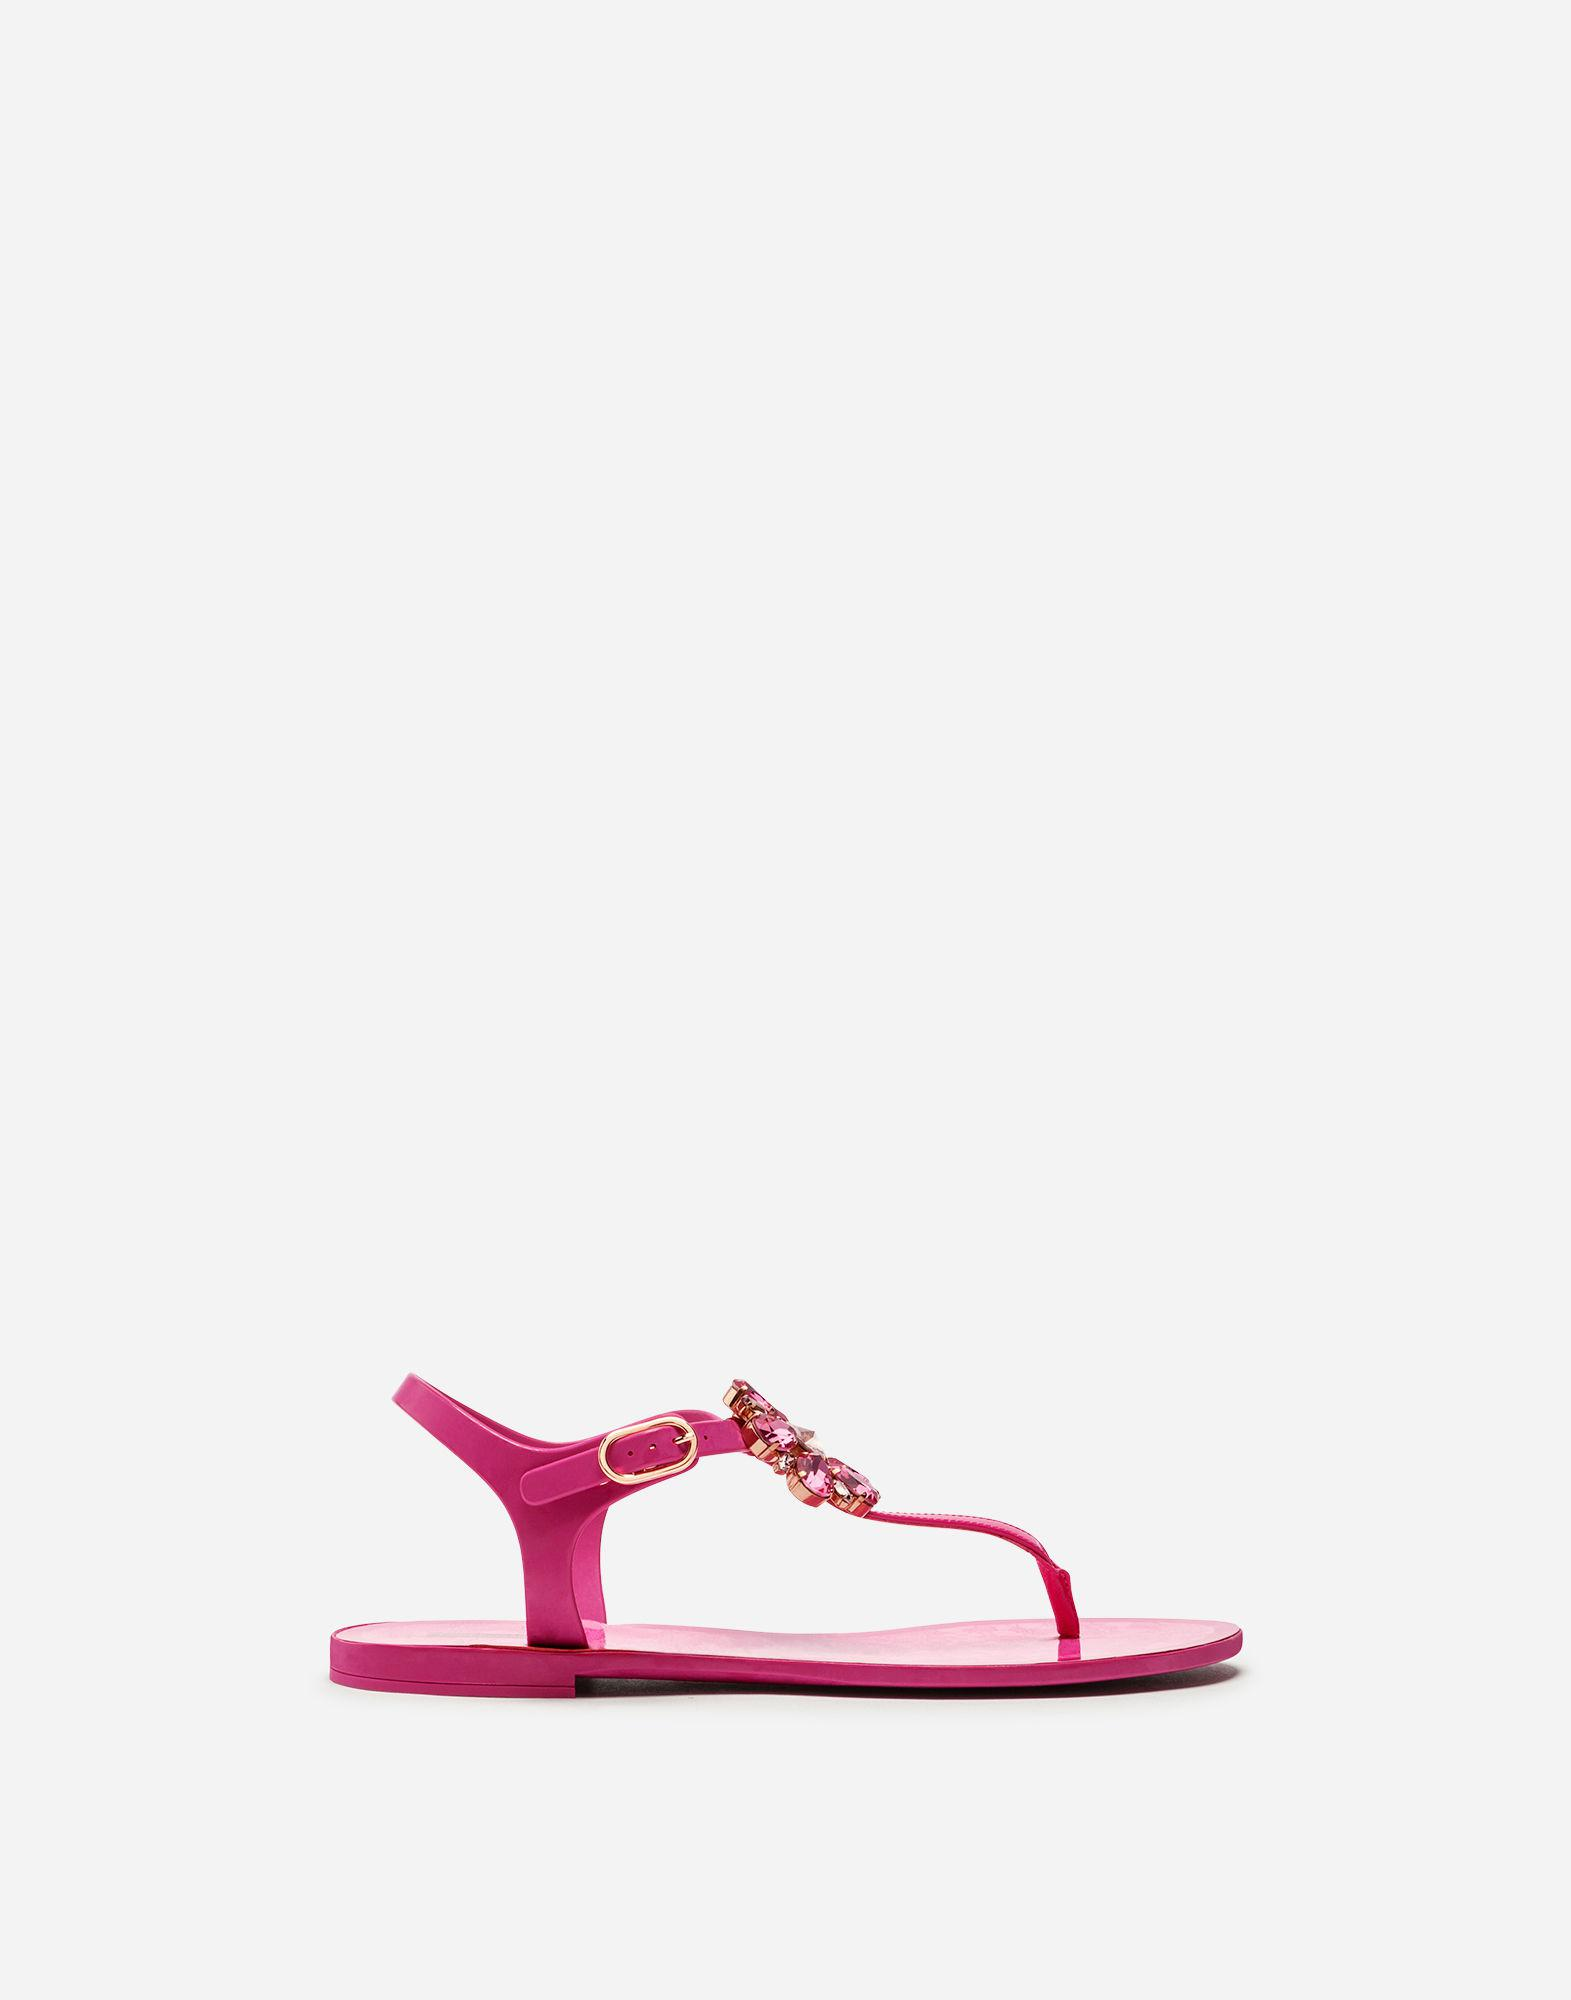 8ec3c06b4ef831 Lyst - Dolce   Gabbana Rubber Flip-flop Sandal And Patent With ...